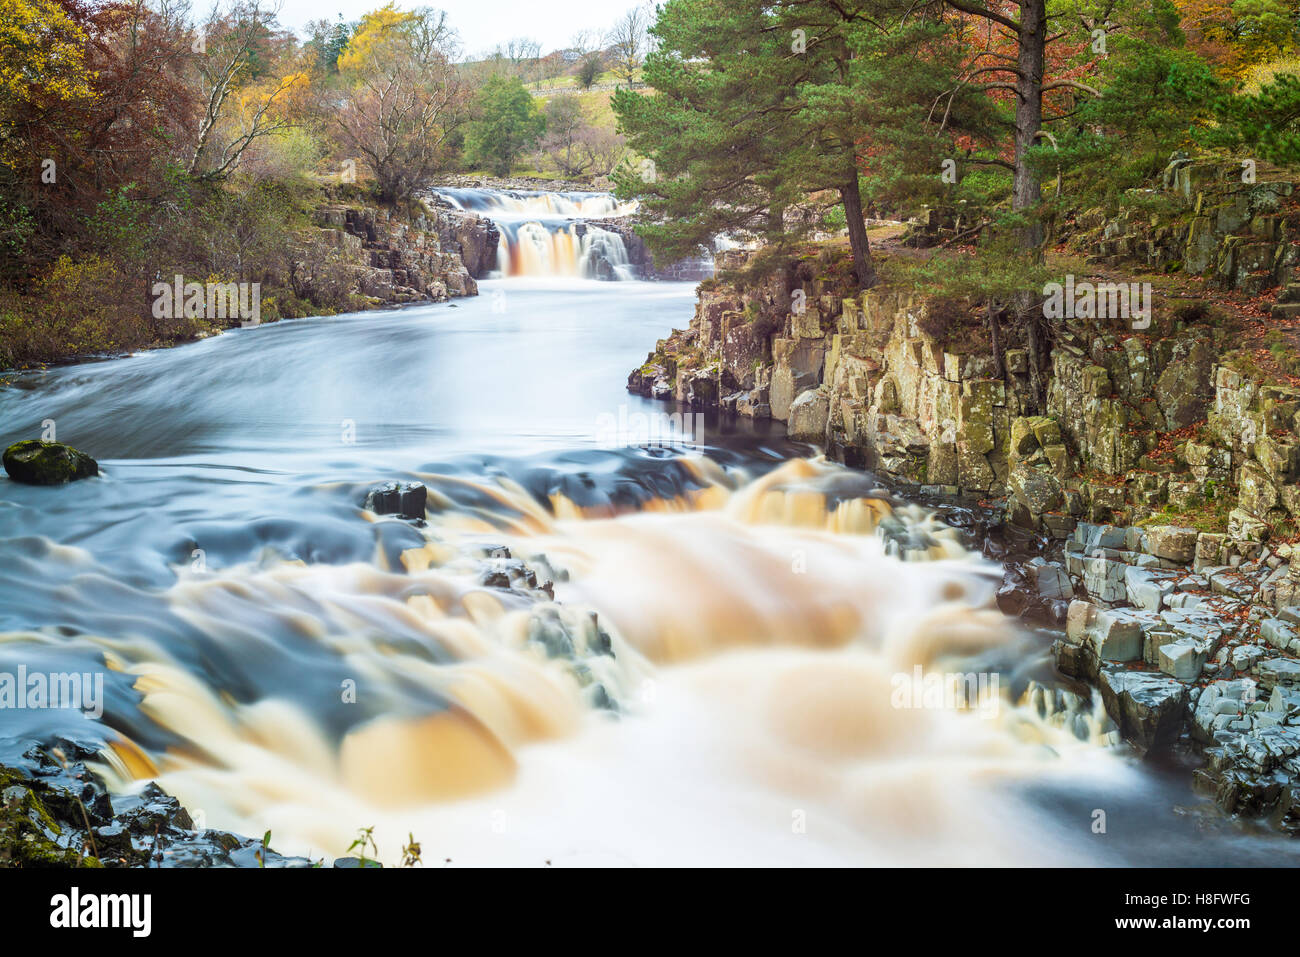 Low Force waterfall in Upper Teesdale, - Stock Image